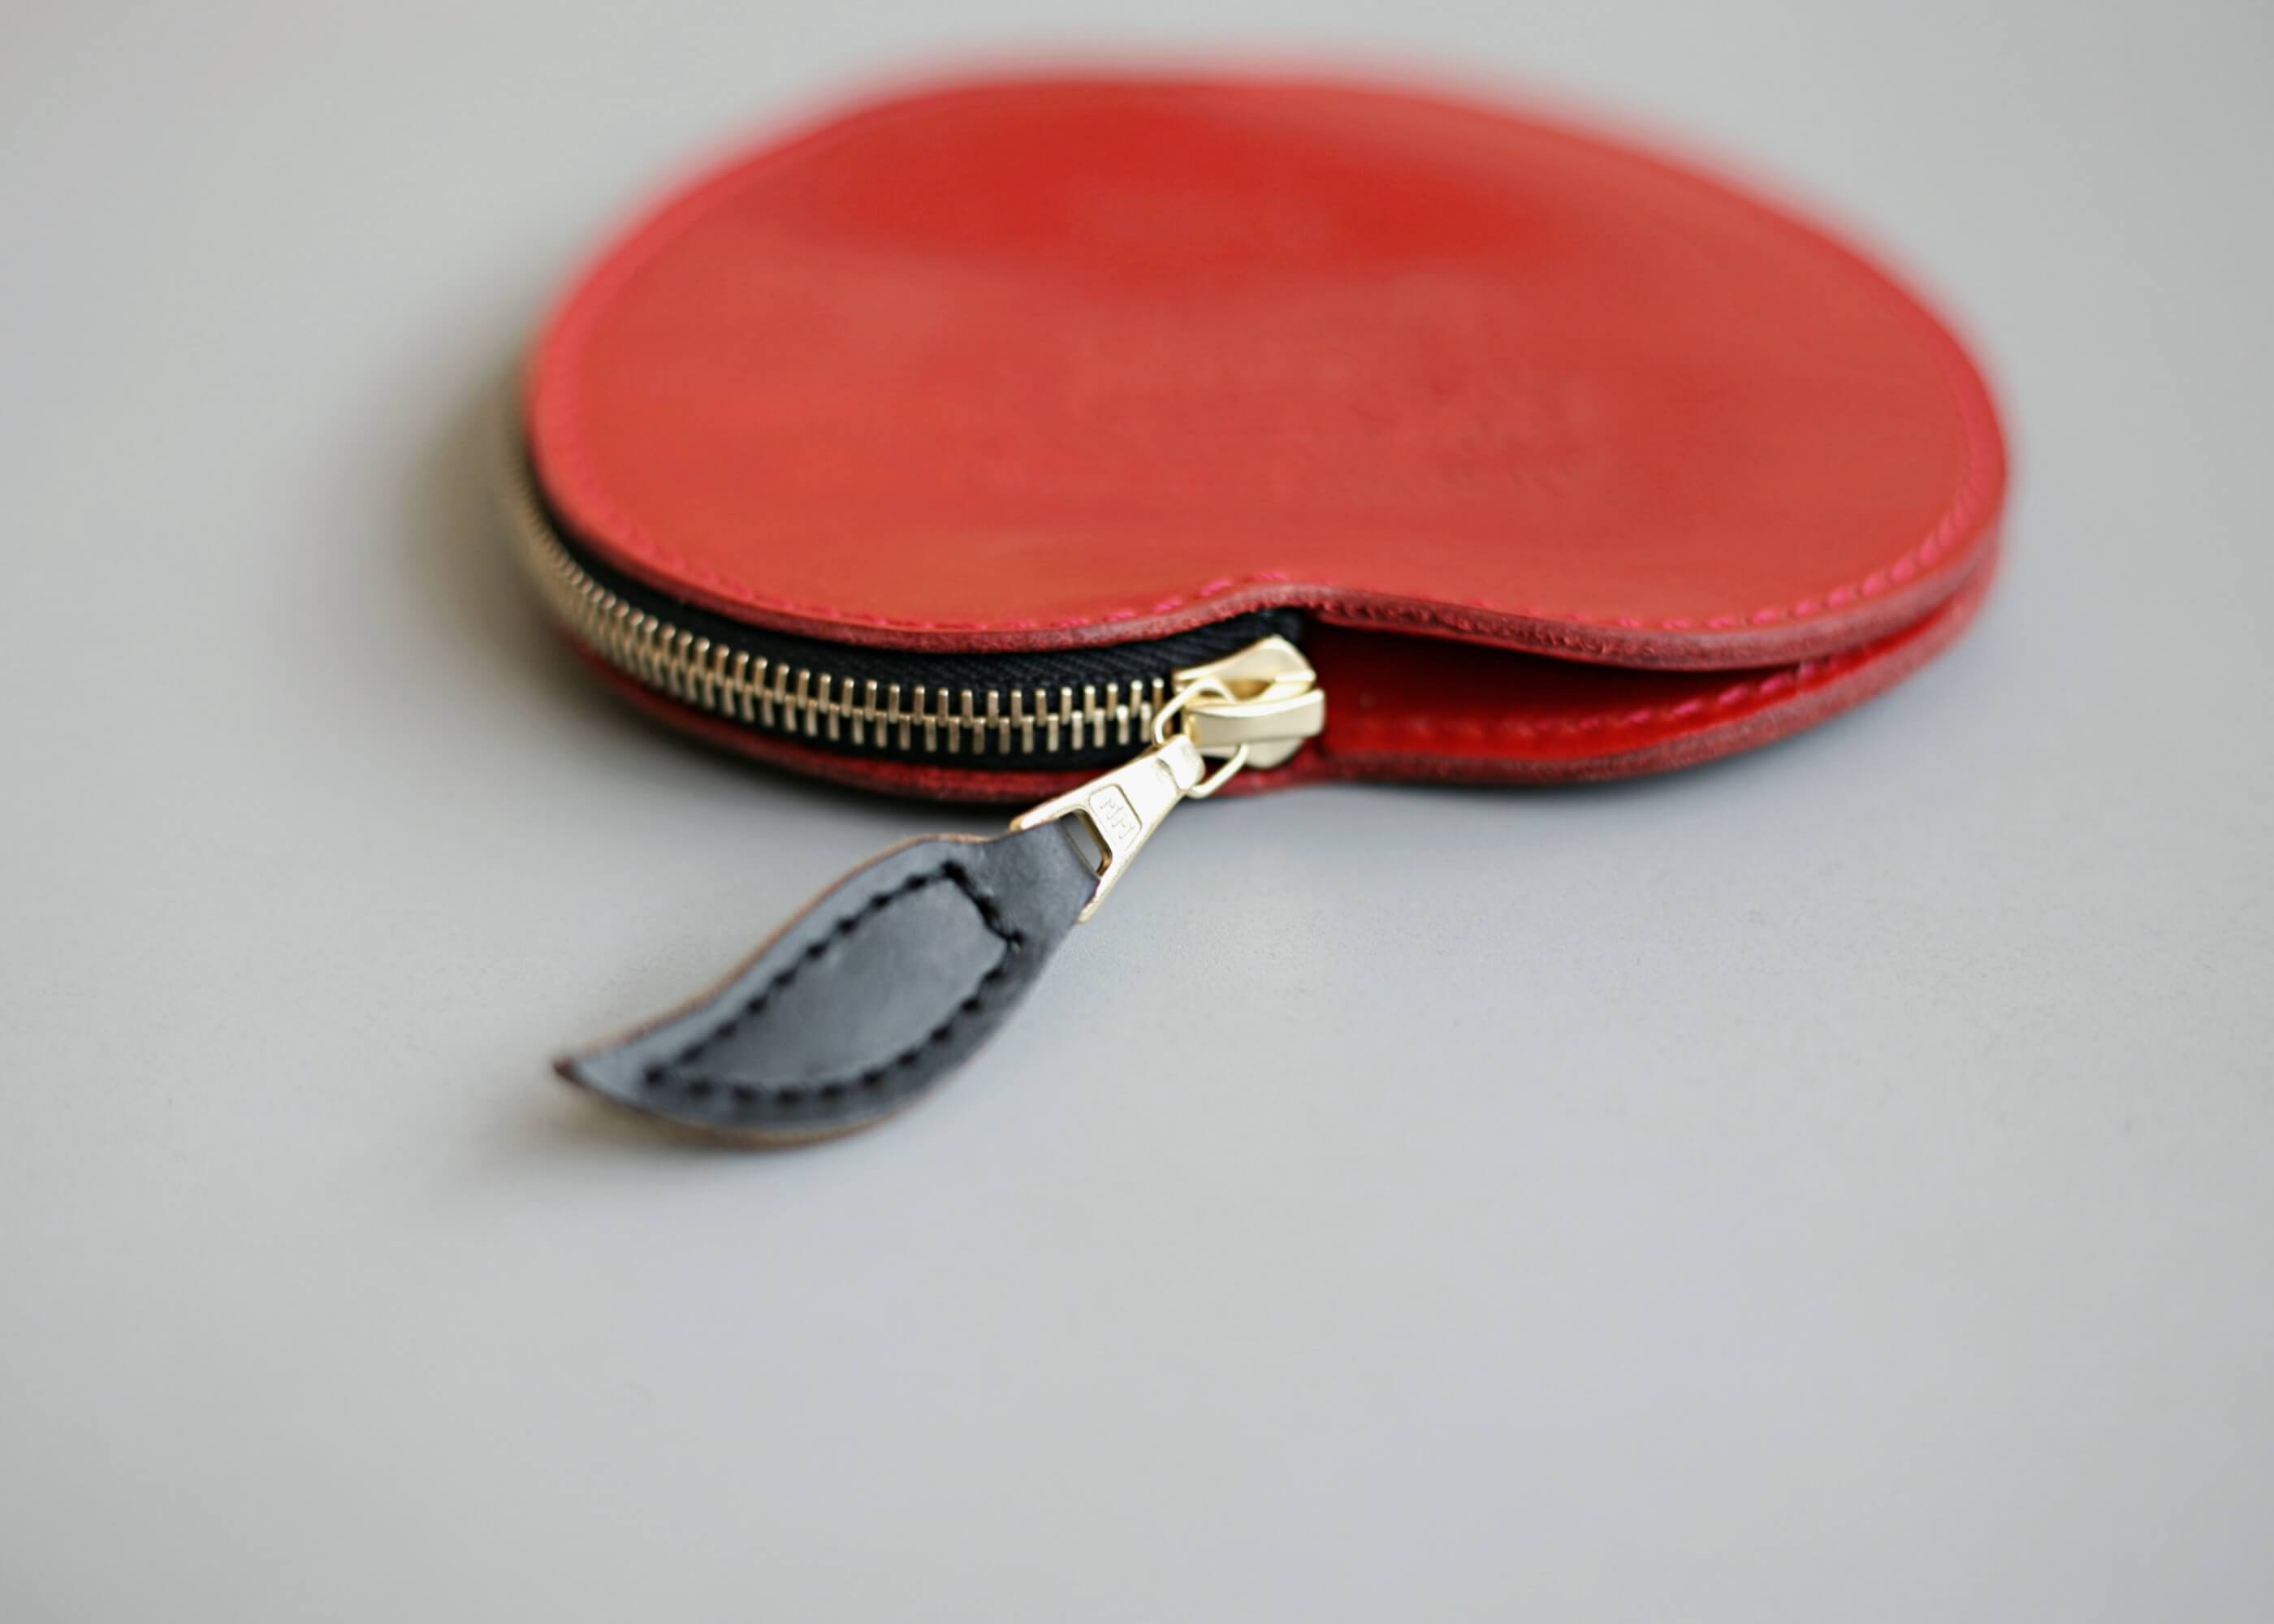 20/80 kip leather apple coin purse 葉っぱ部分のアップ